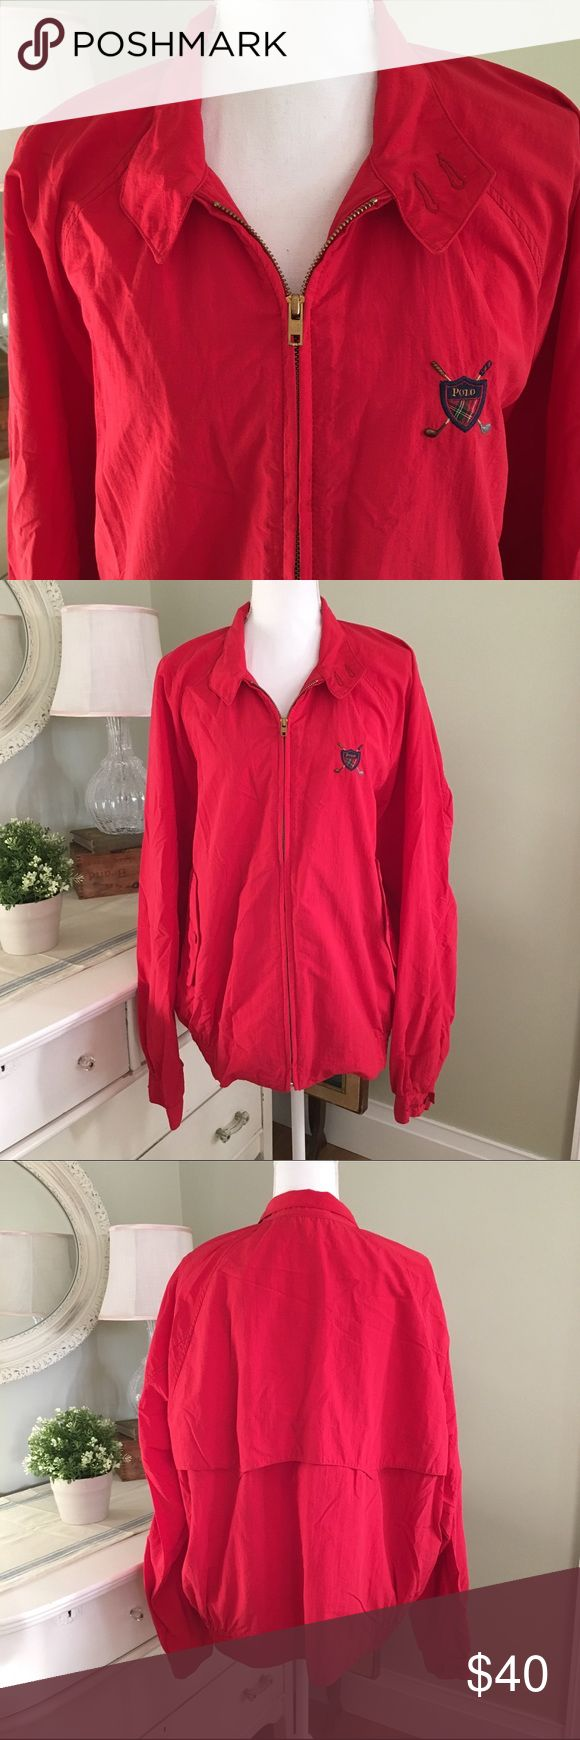 Polo by Ralph Lauren Red Windbreaker This rare red windbreaker from Polo by Ralph Lauren features adjustable cuffs, front buttoned pockets, stretch waistband and signature polo golf crest. Excellent condition! 100% nylon. Made in the USA. Size: Large. Polo by Ralph Lauren Jackets & Coats